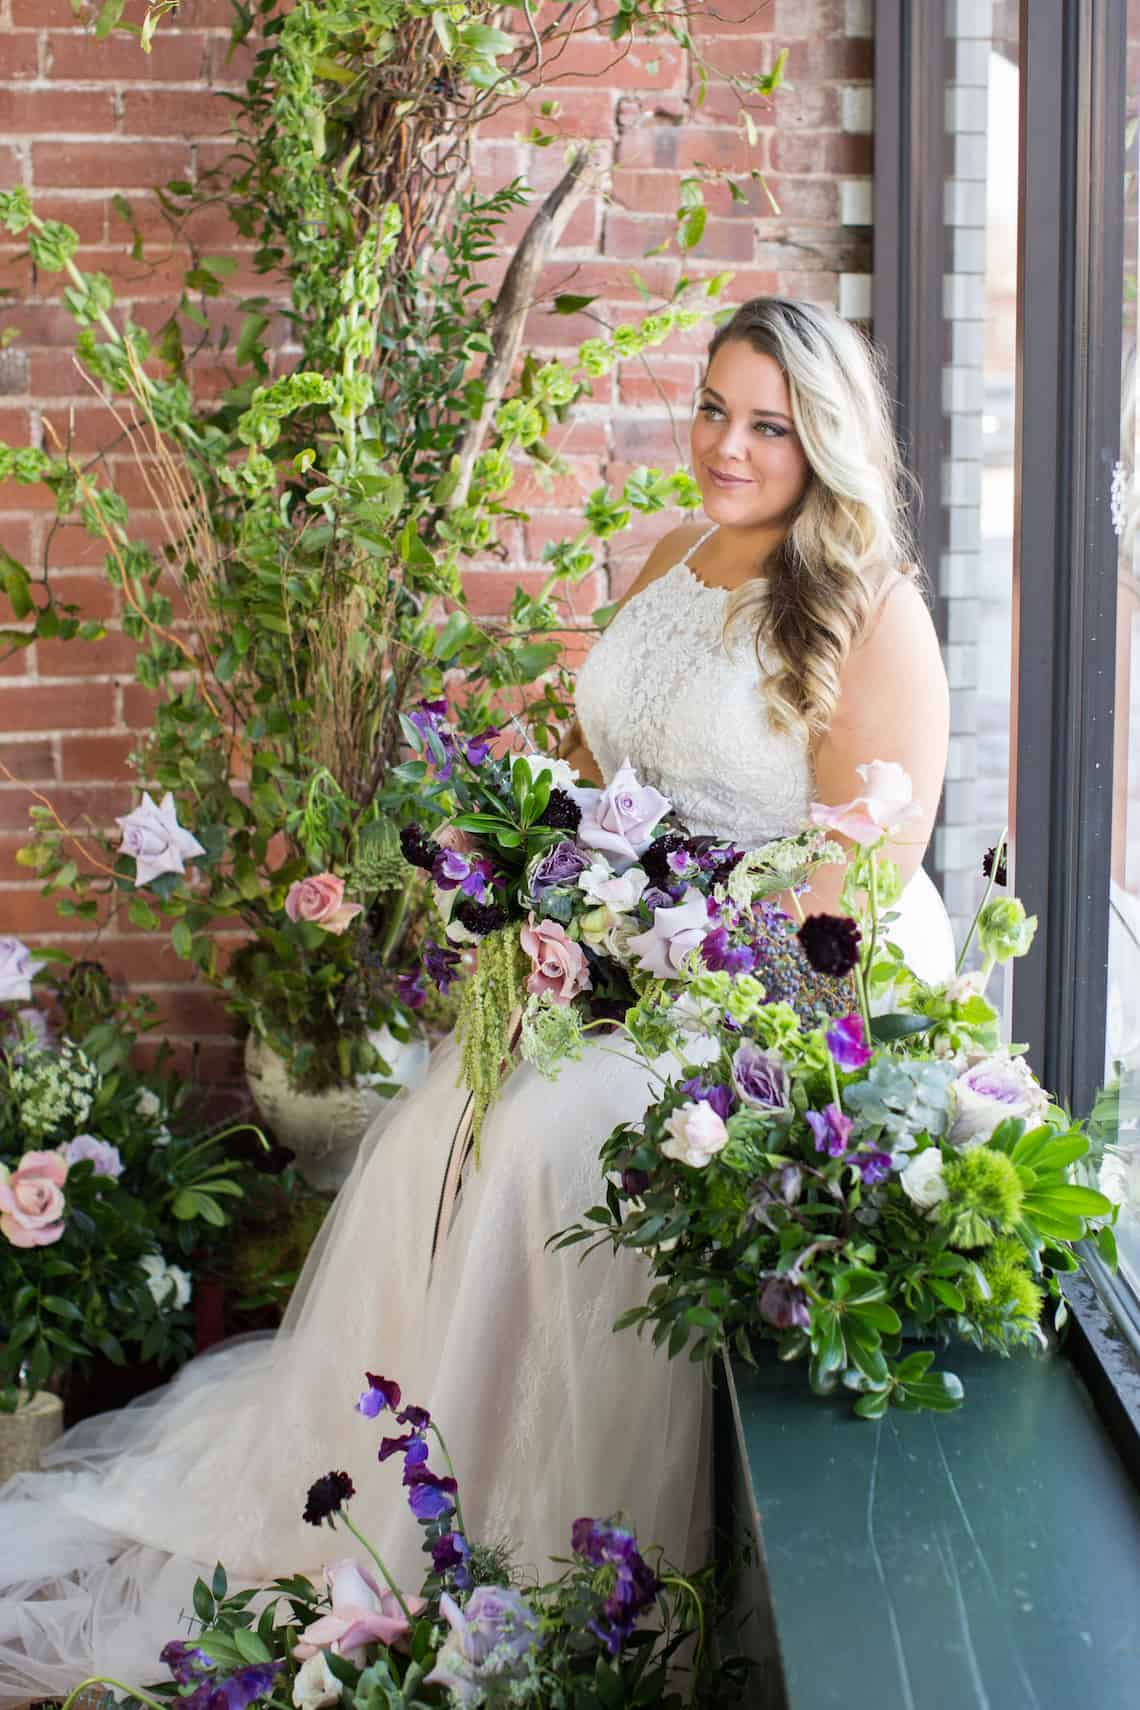 Bride Sitting Amongst Natural Greenery and Flowers